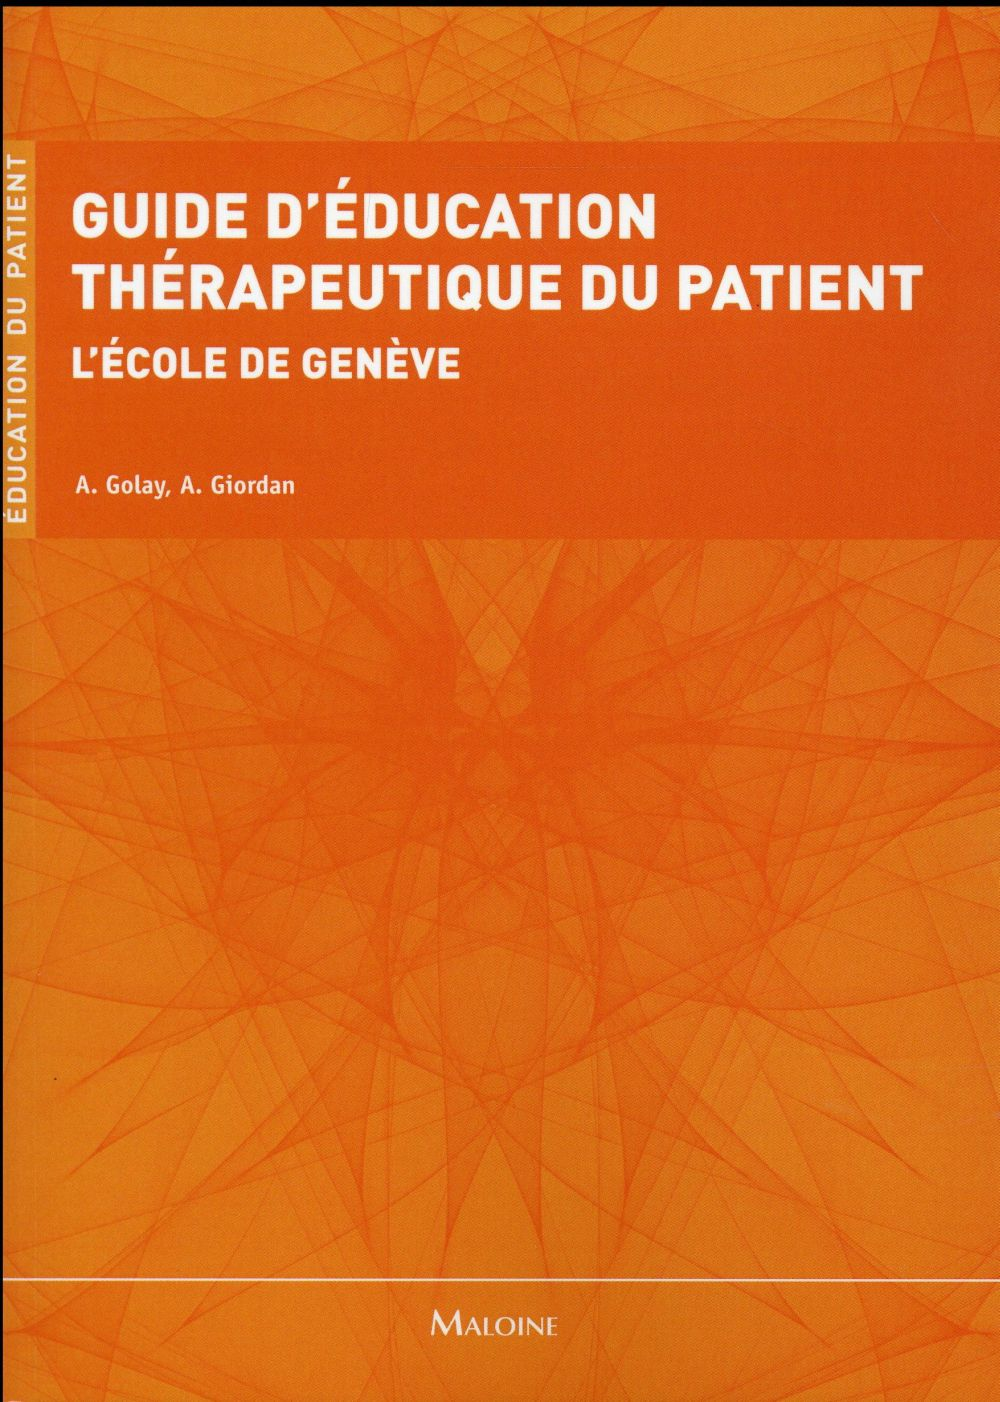 Guide d'education therapeutique du patient l'ecole de geneve